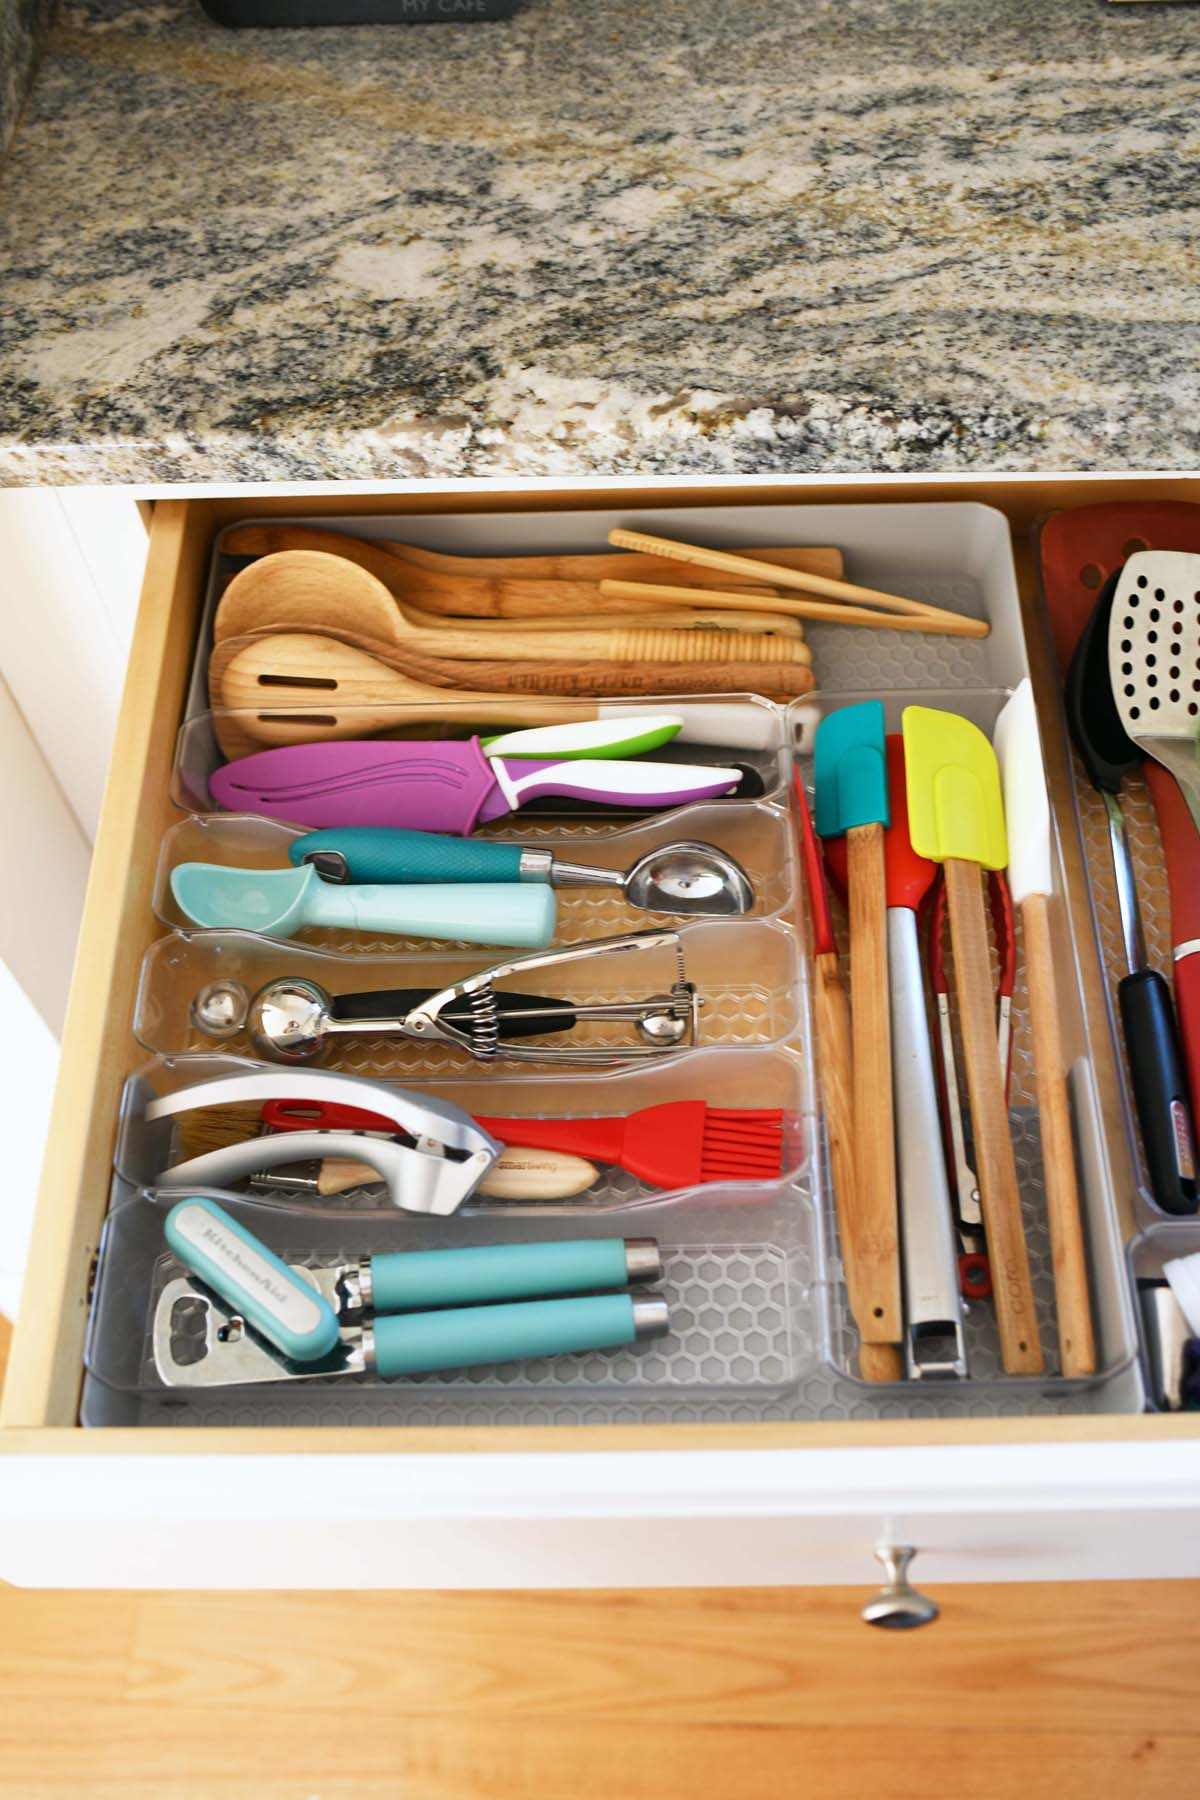 Kitchen Drawer - organized with Hexa by spectrum containers.